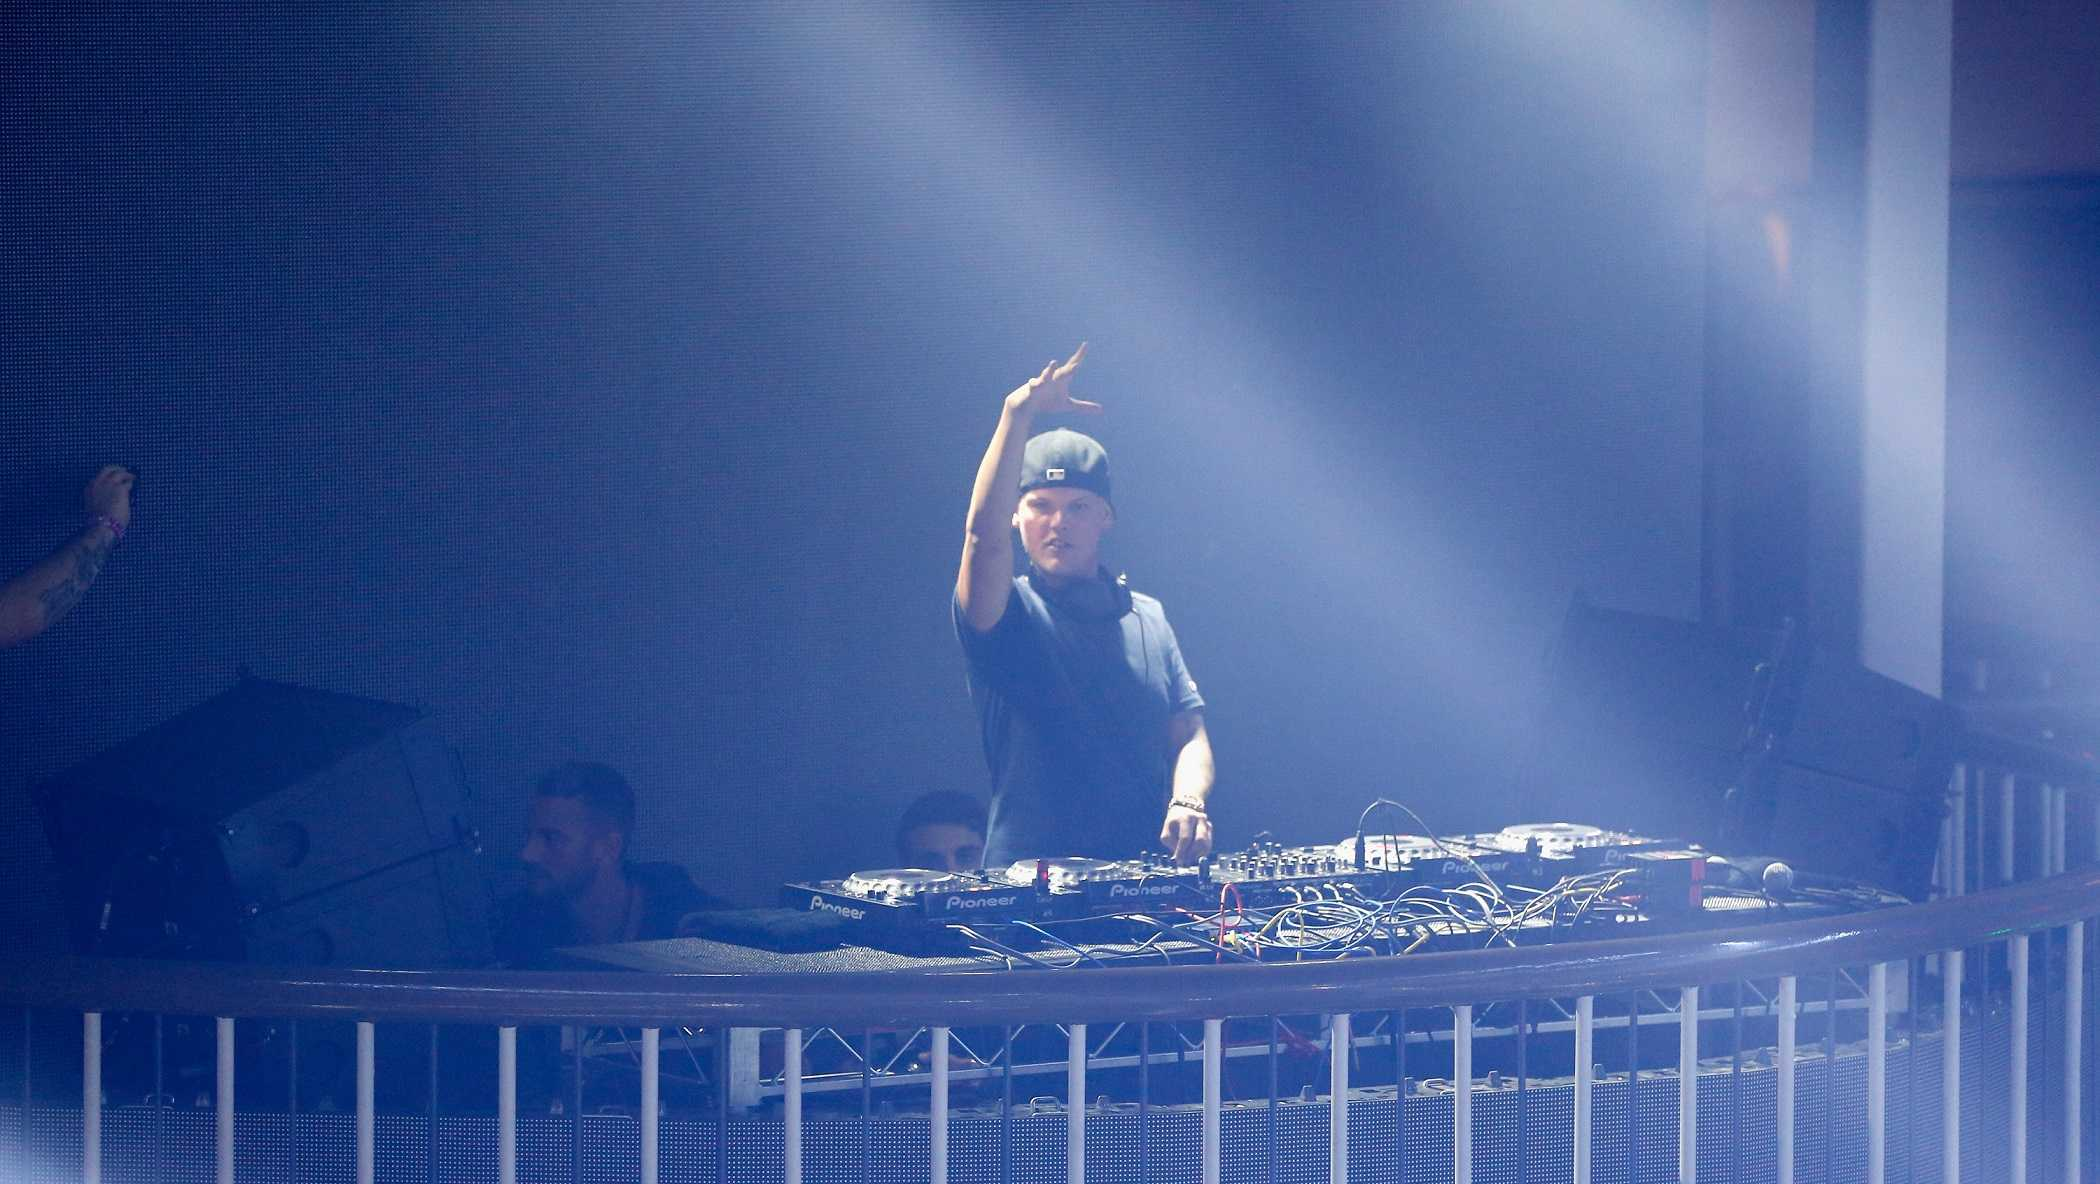 Avicii performsduring Rolling Stone Live SF with Talent Resources on February 7, 2016 in San Francisco, California.